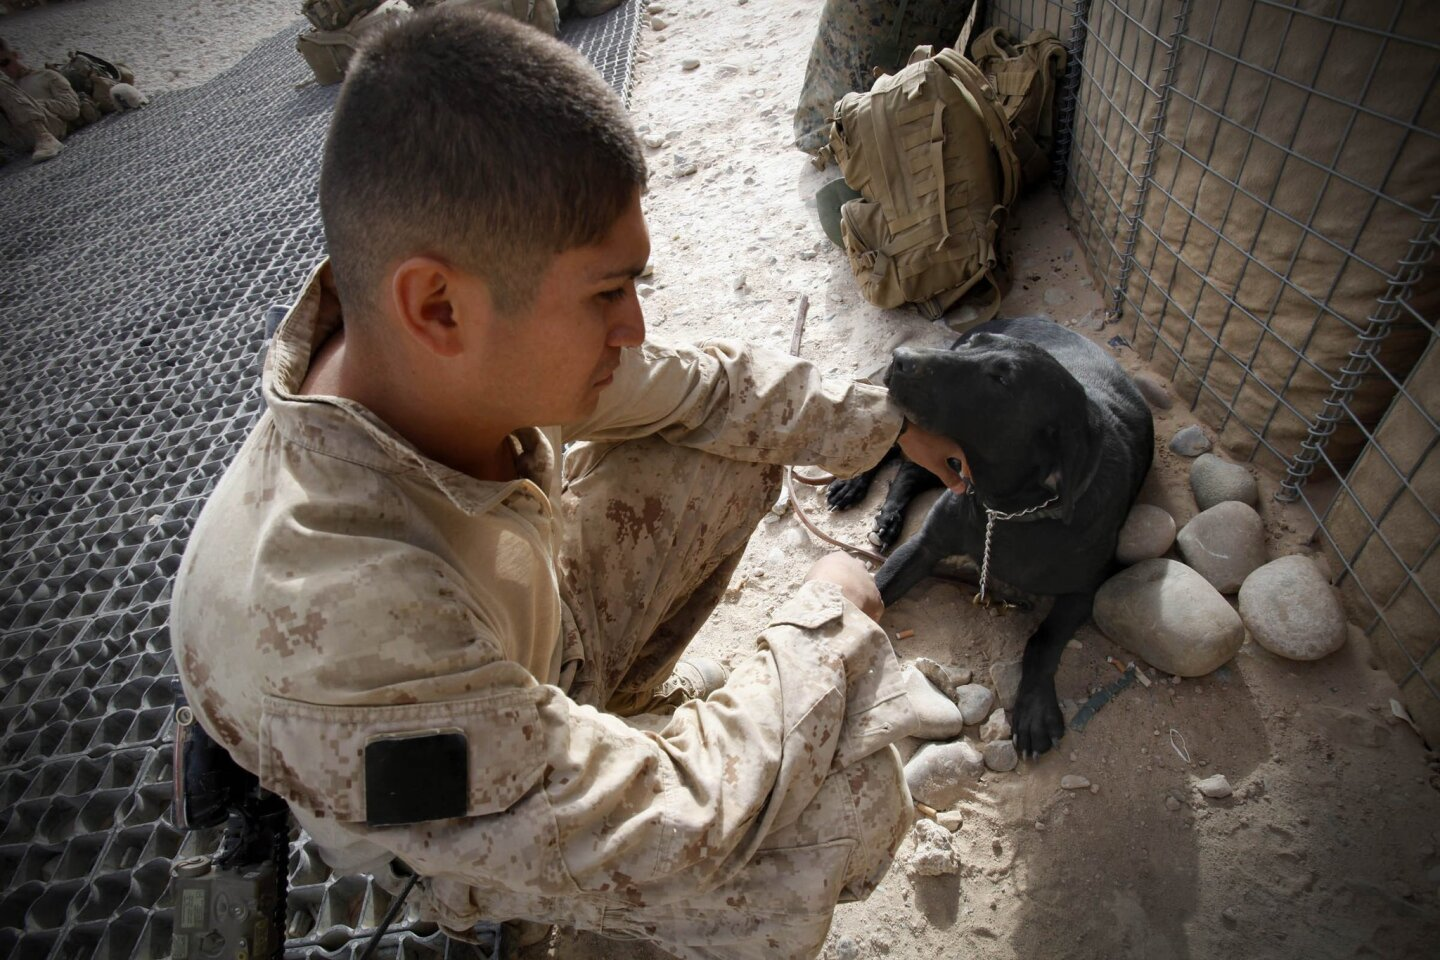 Marine dogs in Afghanistan